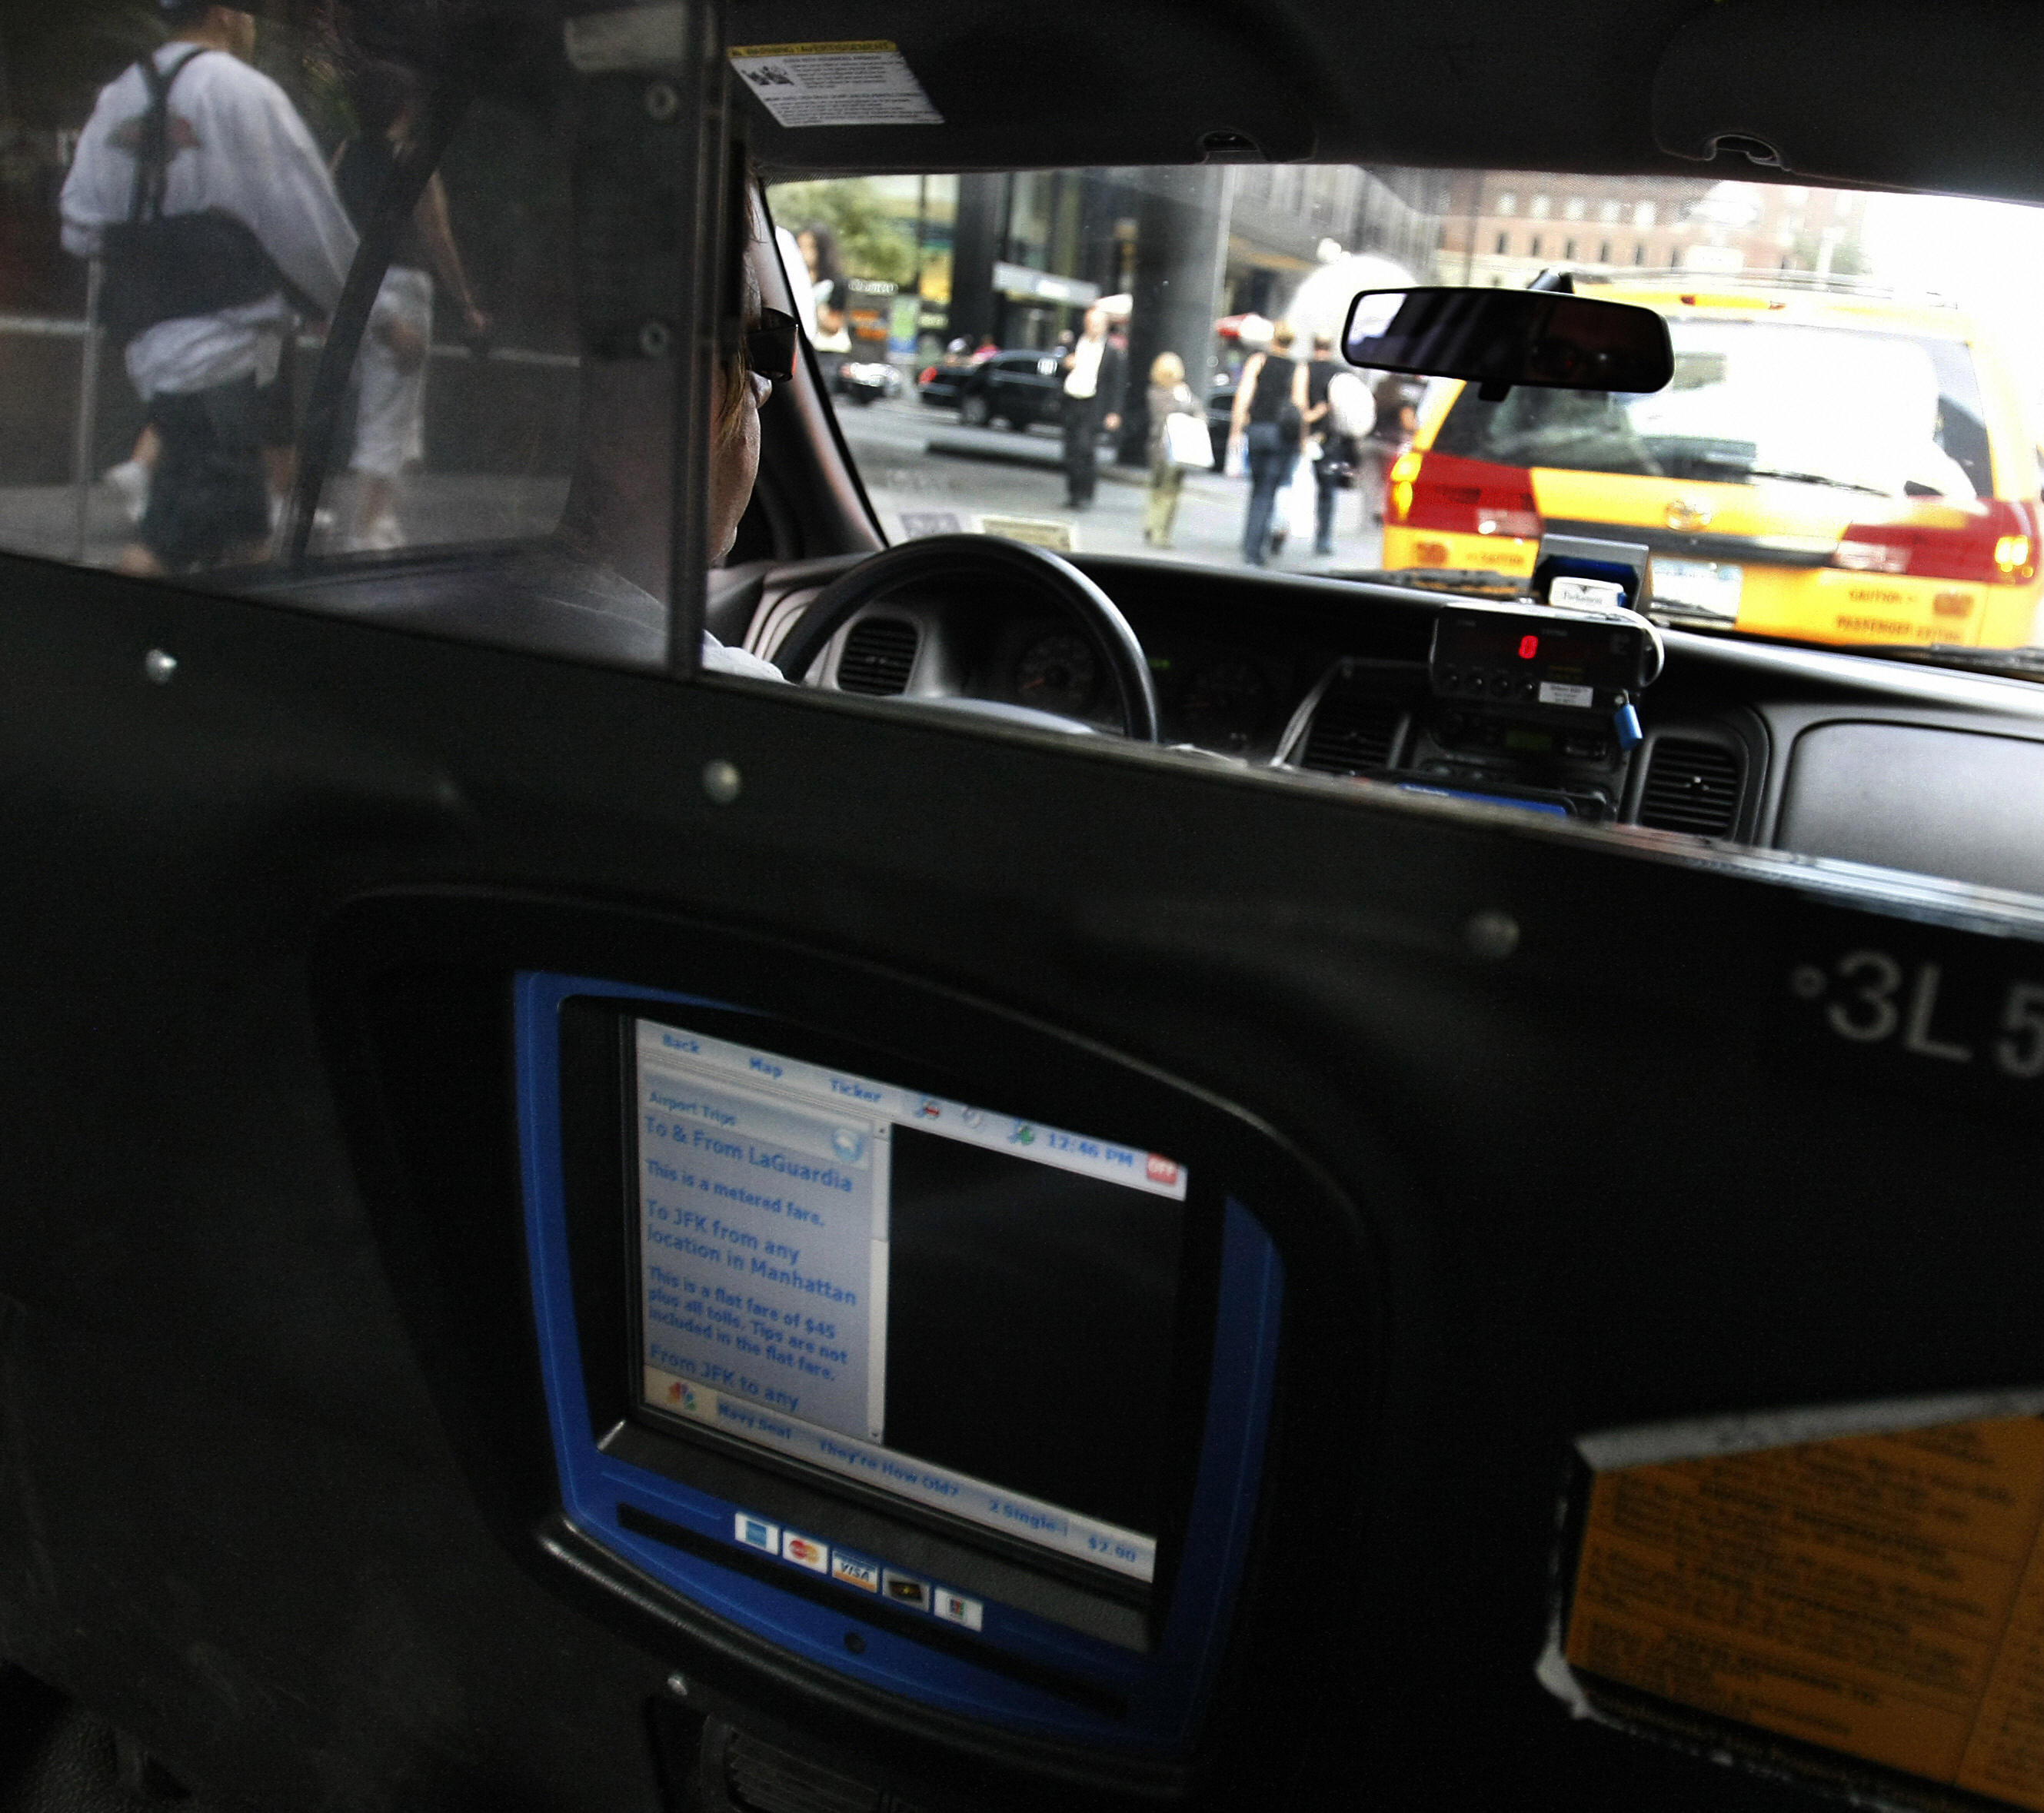 A New York City cab driver waits in line